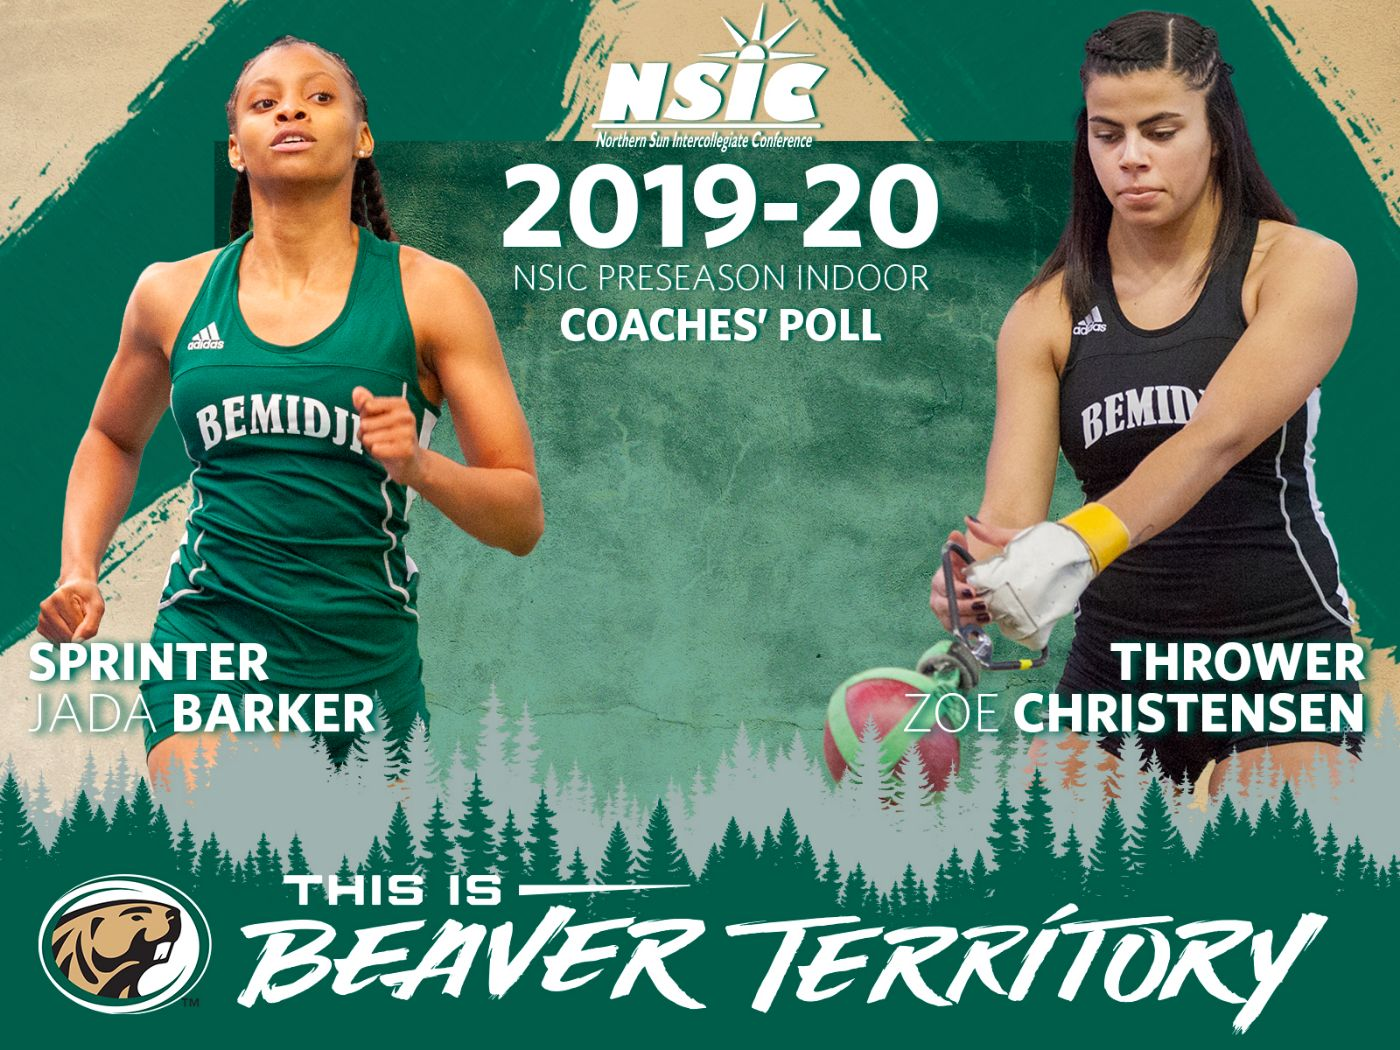 Barker, Christensen named BSU Athletes to Watch in NSIC Indoor Coaches Poll